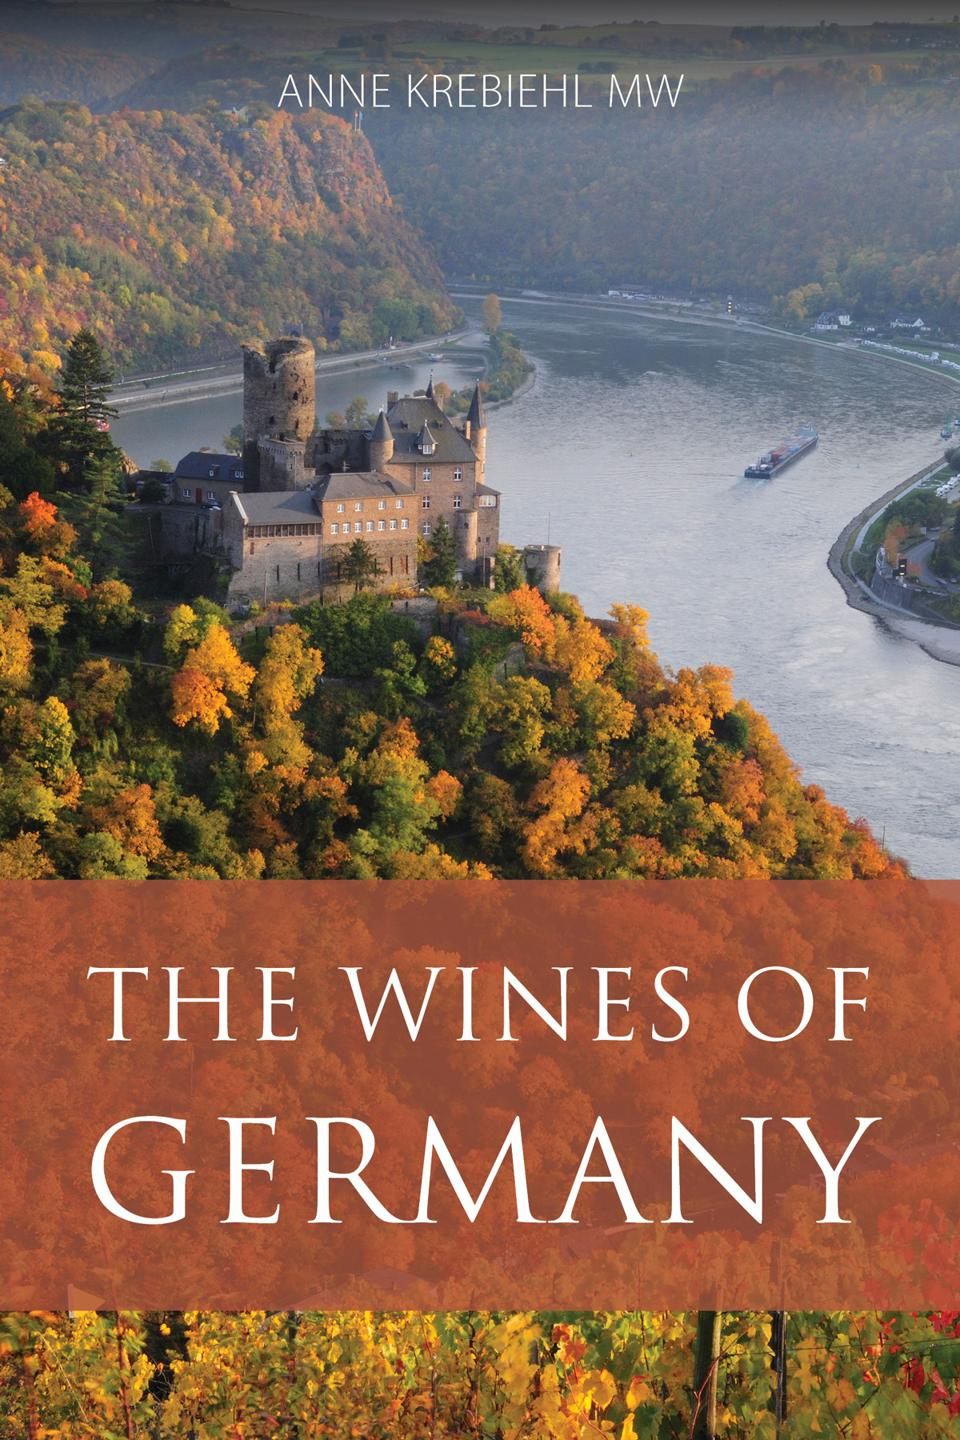 Book jacket with image of castle on river and title The Wines of Germany